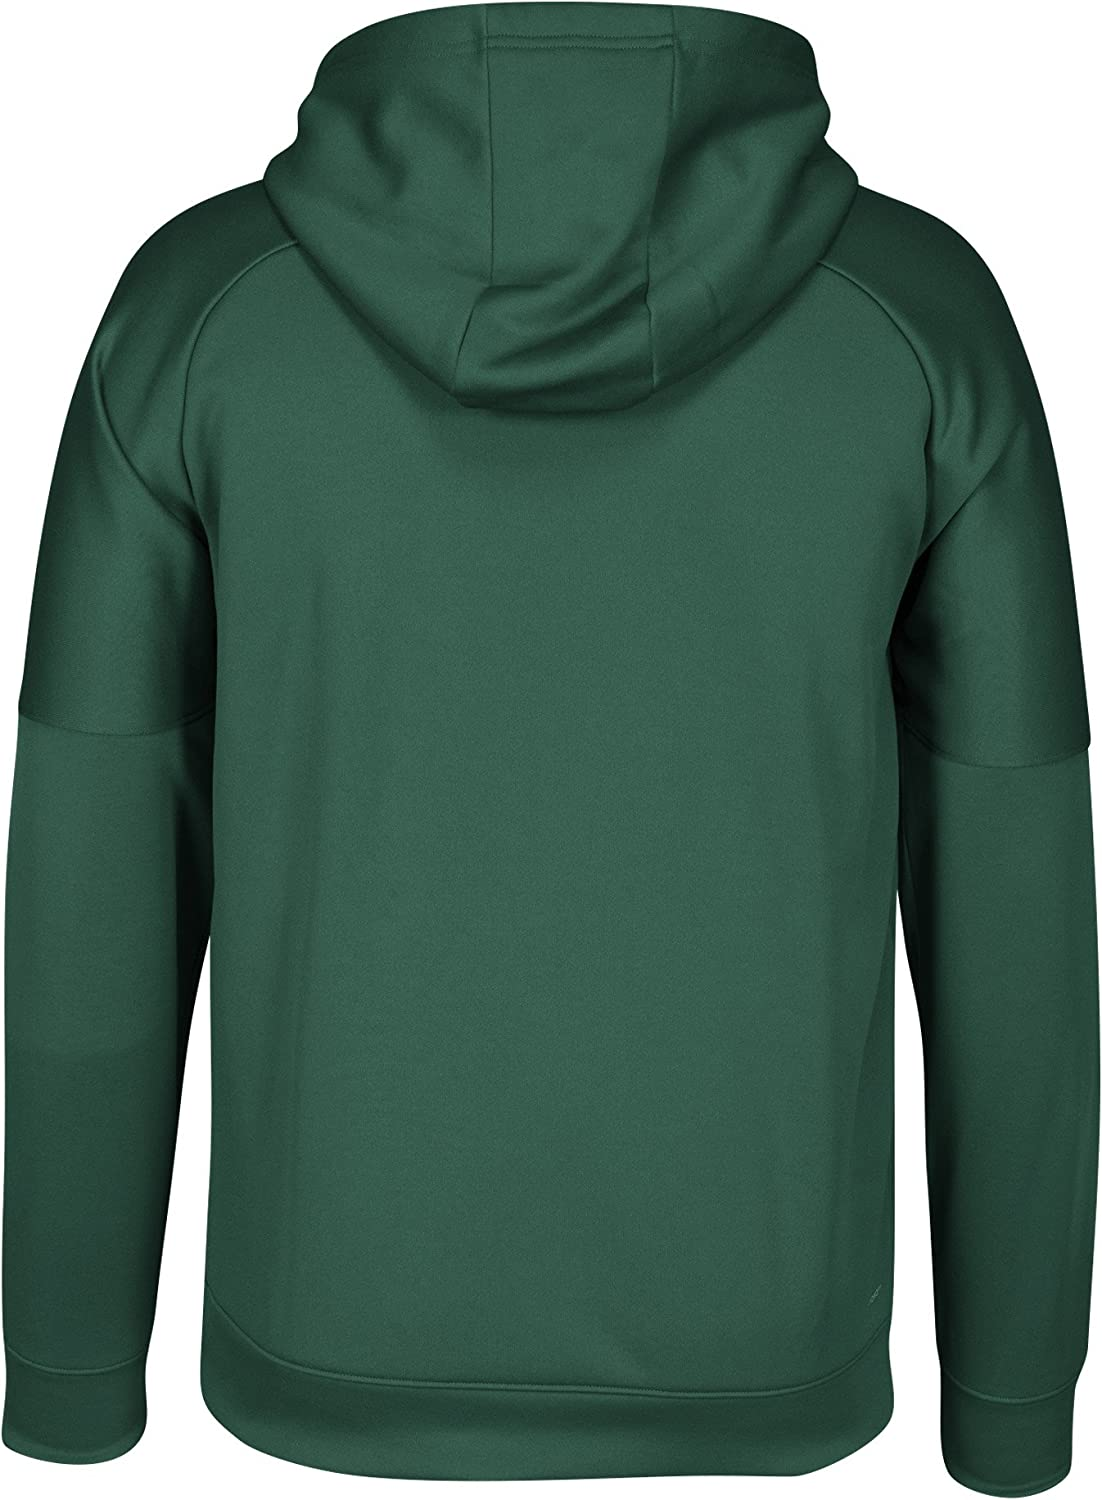 adidas Herren Arched Heat Team Issue Fleece Pullover Hood Arched Heat Team Issue Fleece Pullover Kapuze (6er Pack) Dunkelgrün